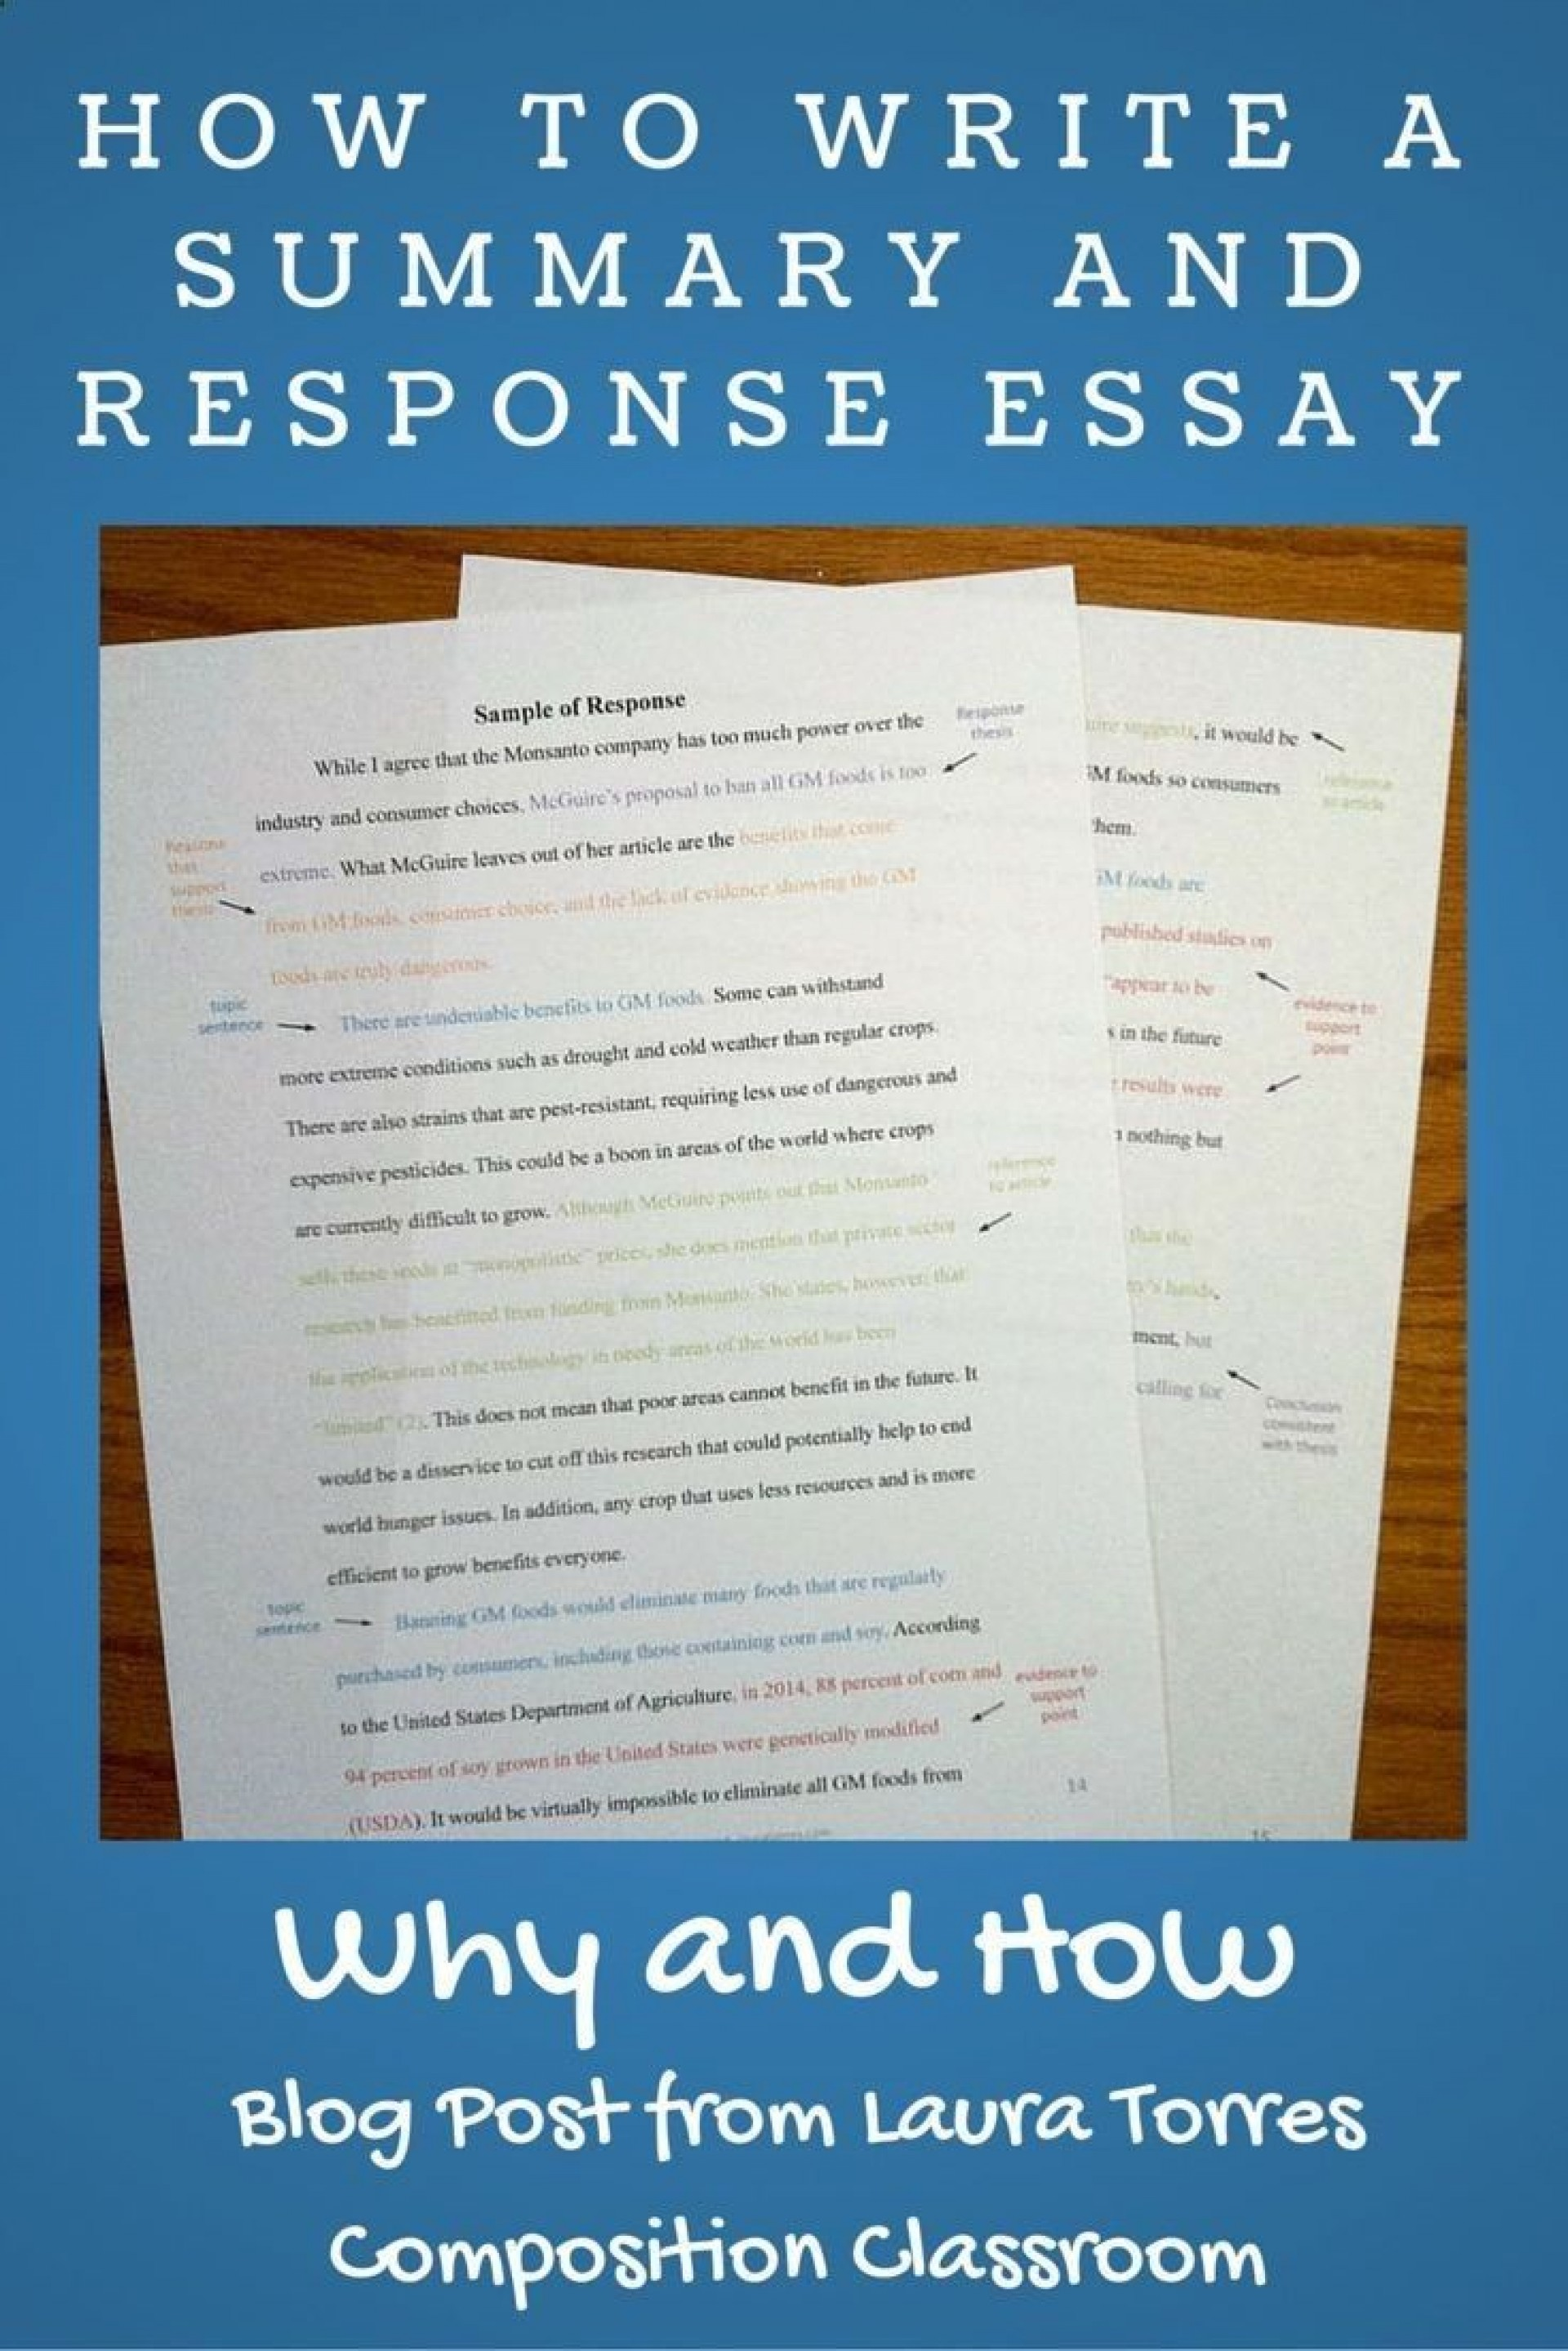 020 Essay Example Summary And Response Stupendous Thesis Conclusion Analysis Sample 1920